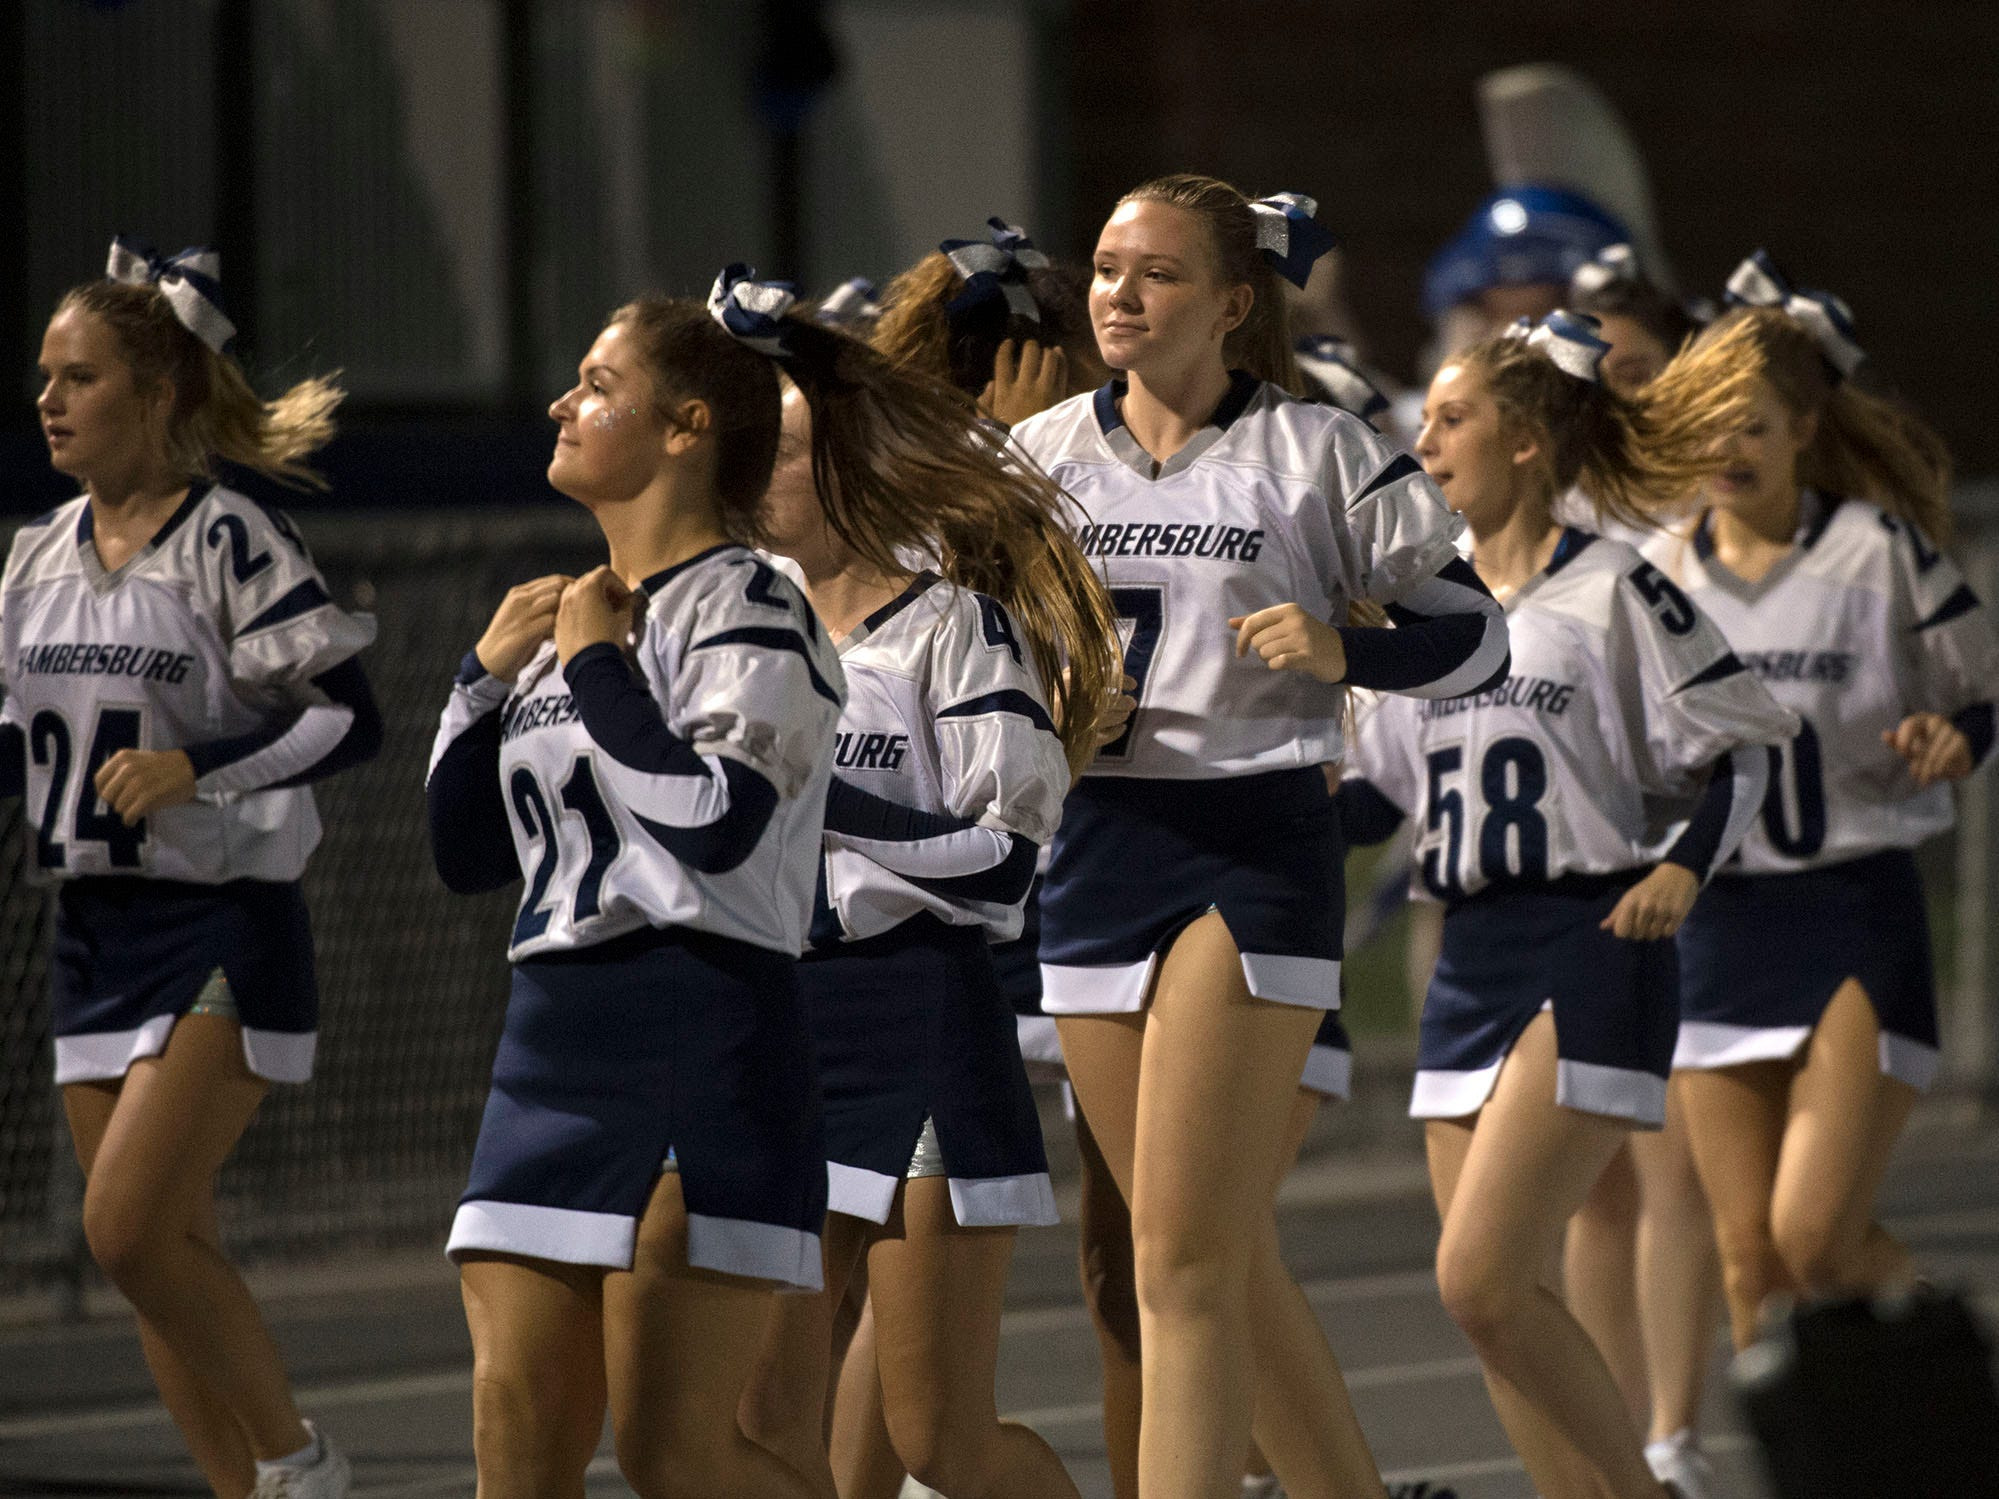 Cheerleaders celebrate following a score. Chambersburg Trojans are 5-1 after a homecoming victory over Cumberland Valley 28-14 in PIAA football on Friday, Sept. 28, 2018.